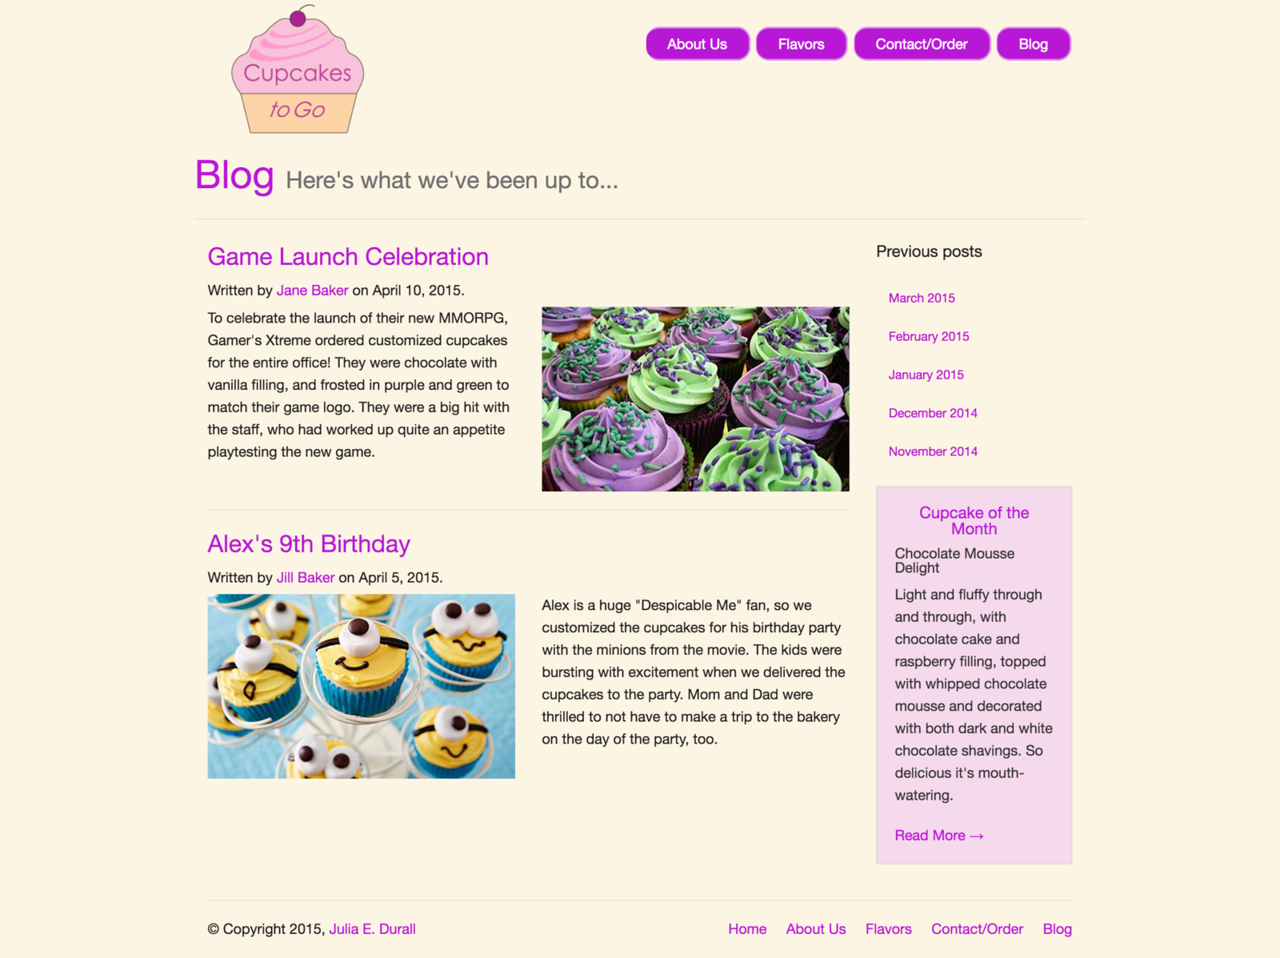 Cupcakes to Go: Blog Page